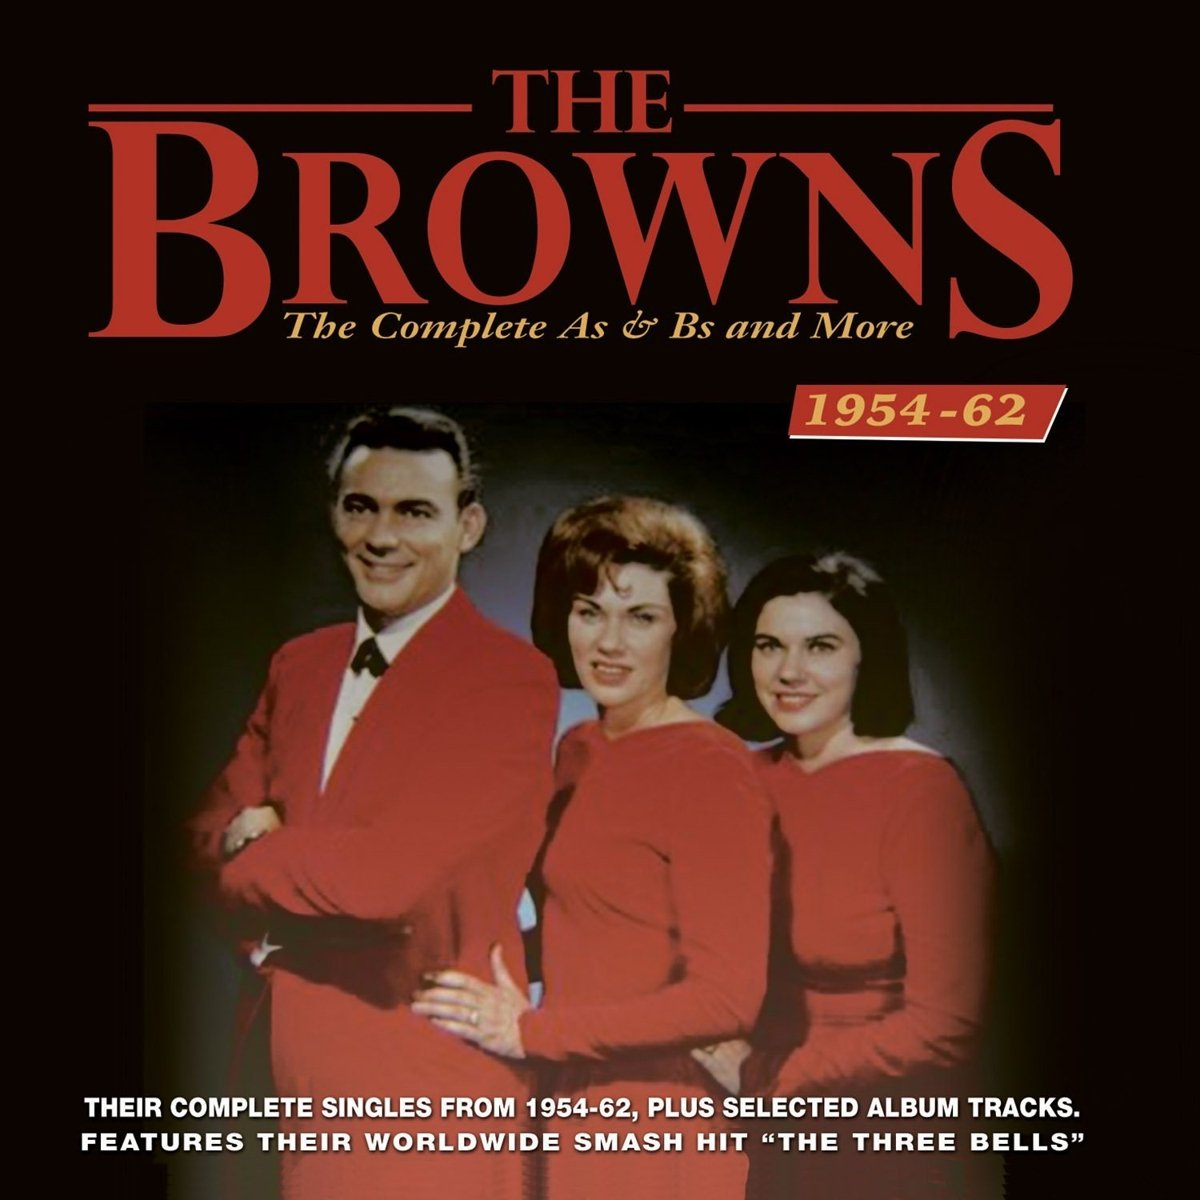 CD : The Browns - Complete As & Bs And More 1954-62 (2PC)